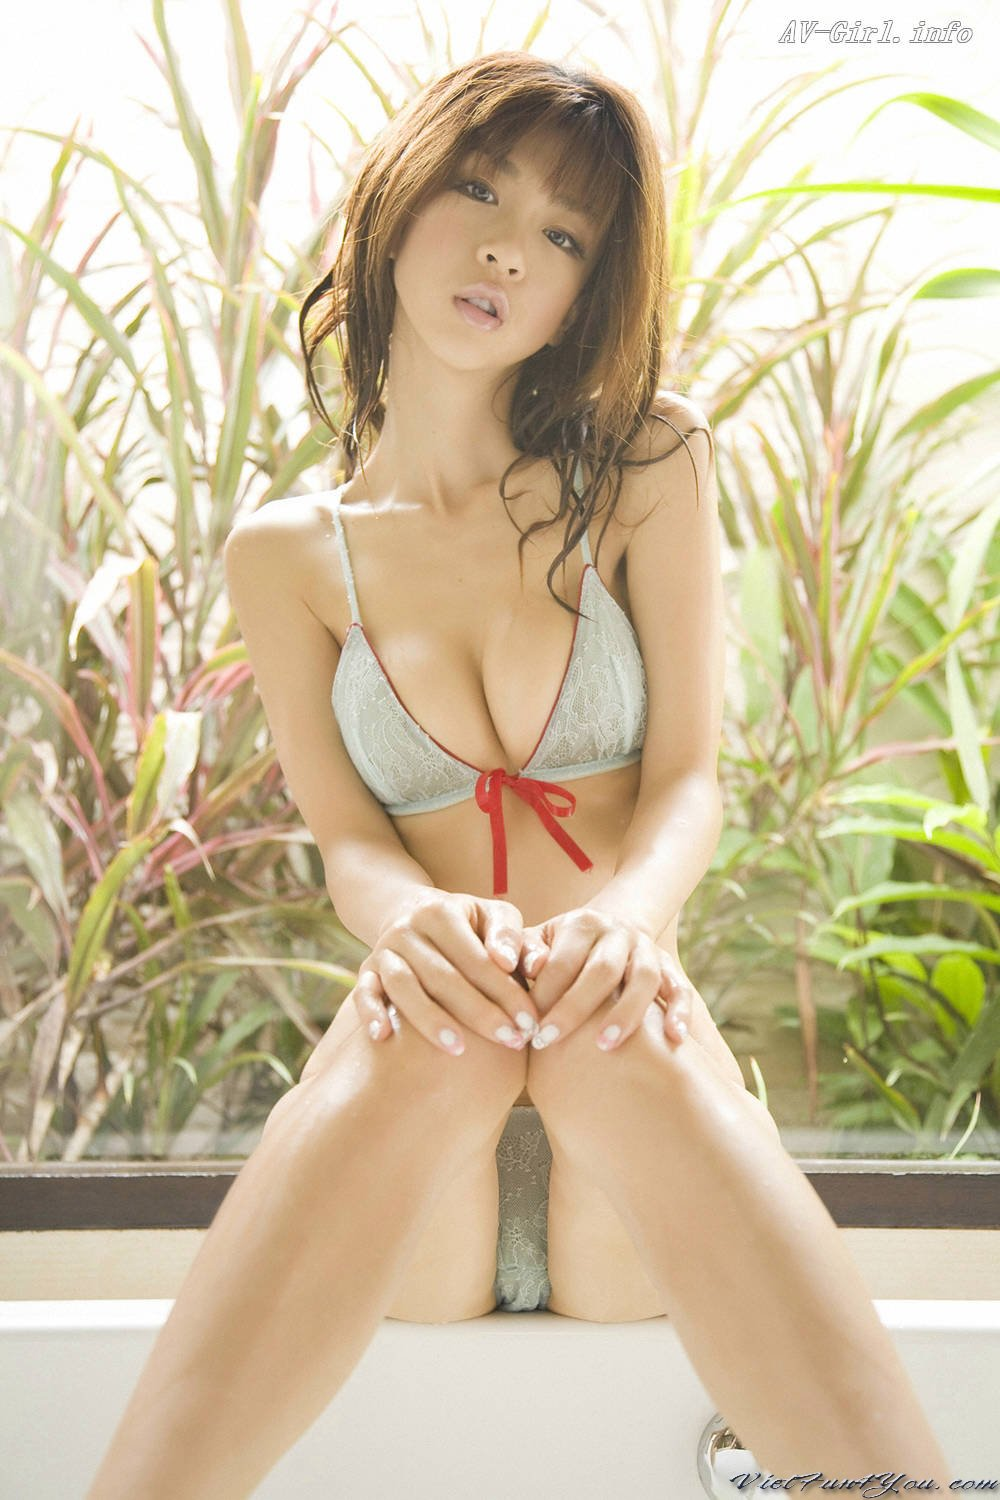 Congratulate, simply Sexy lingerie porn girls japan interesting